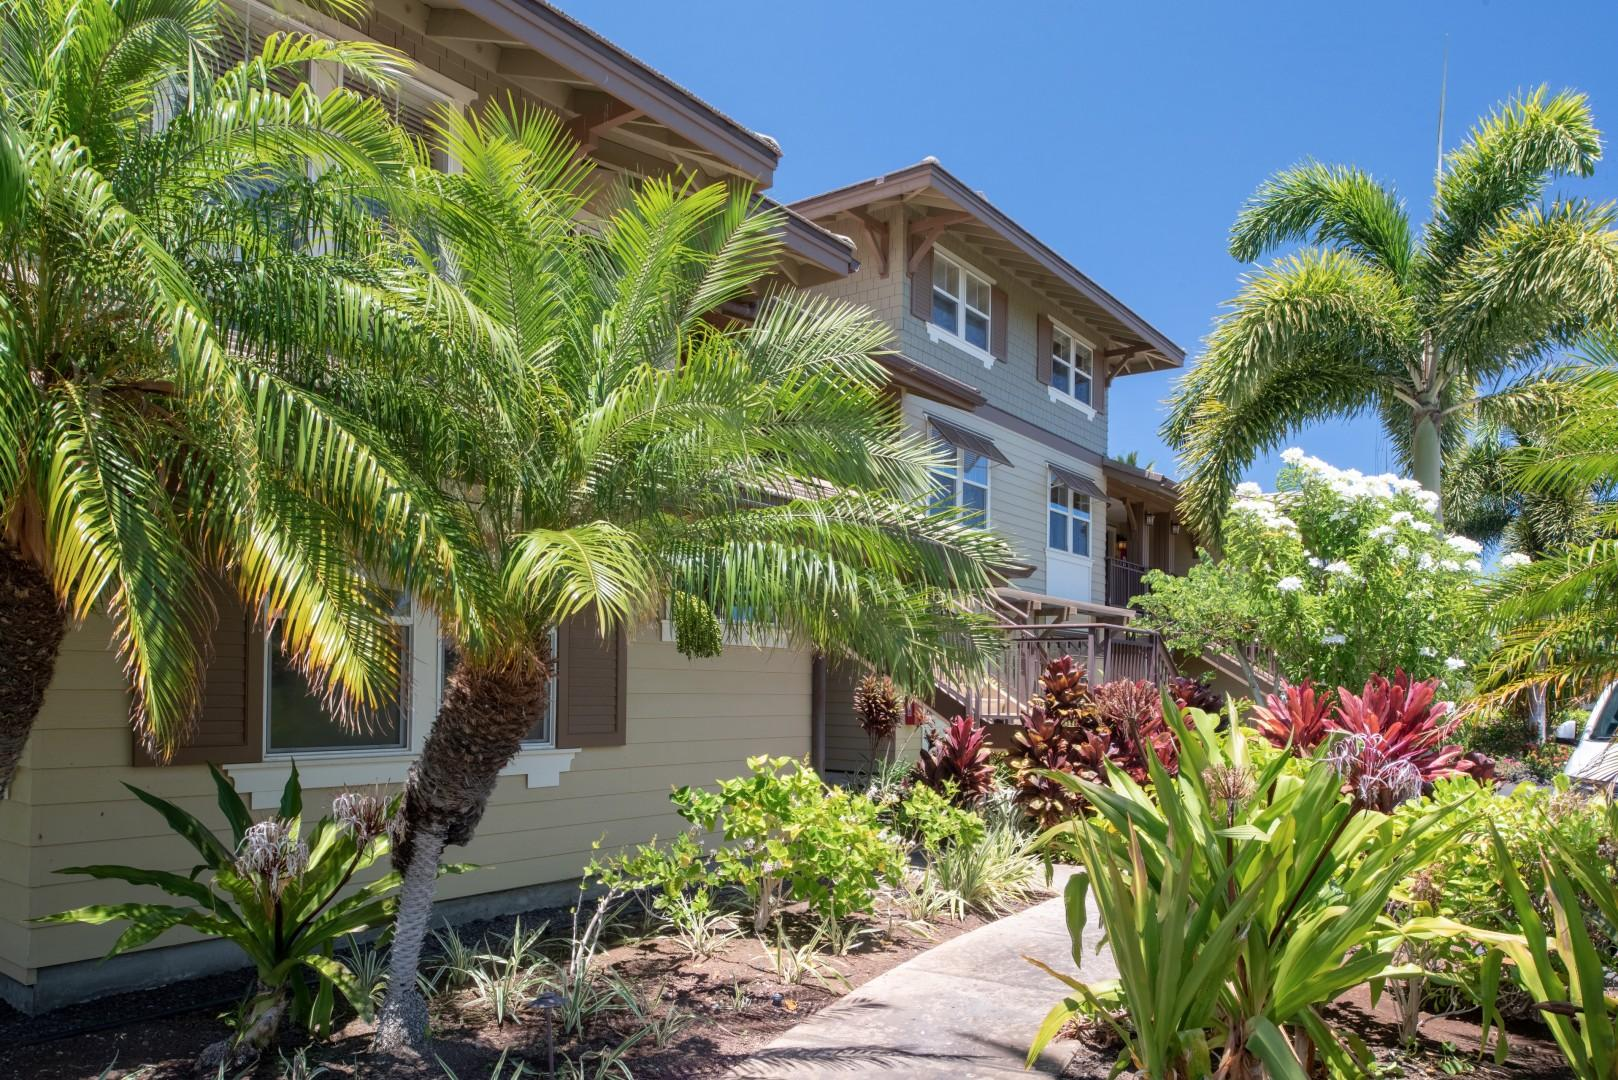 Lush tropical landscaping embellish the pathway to the villas